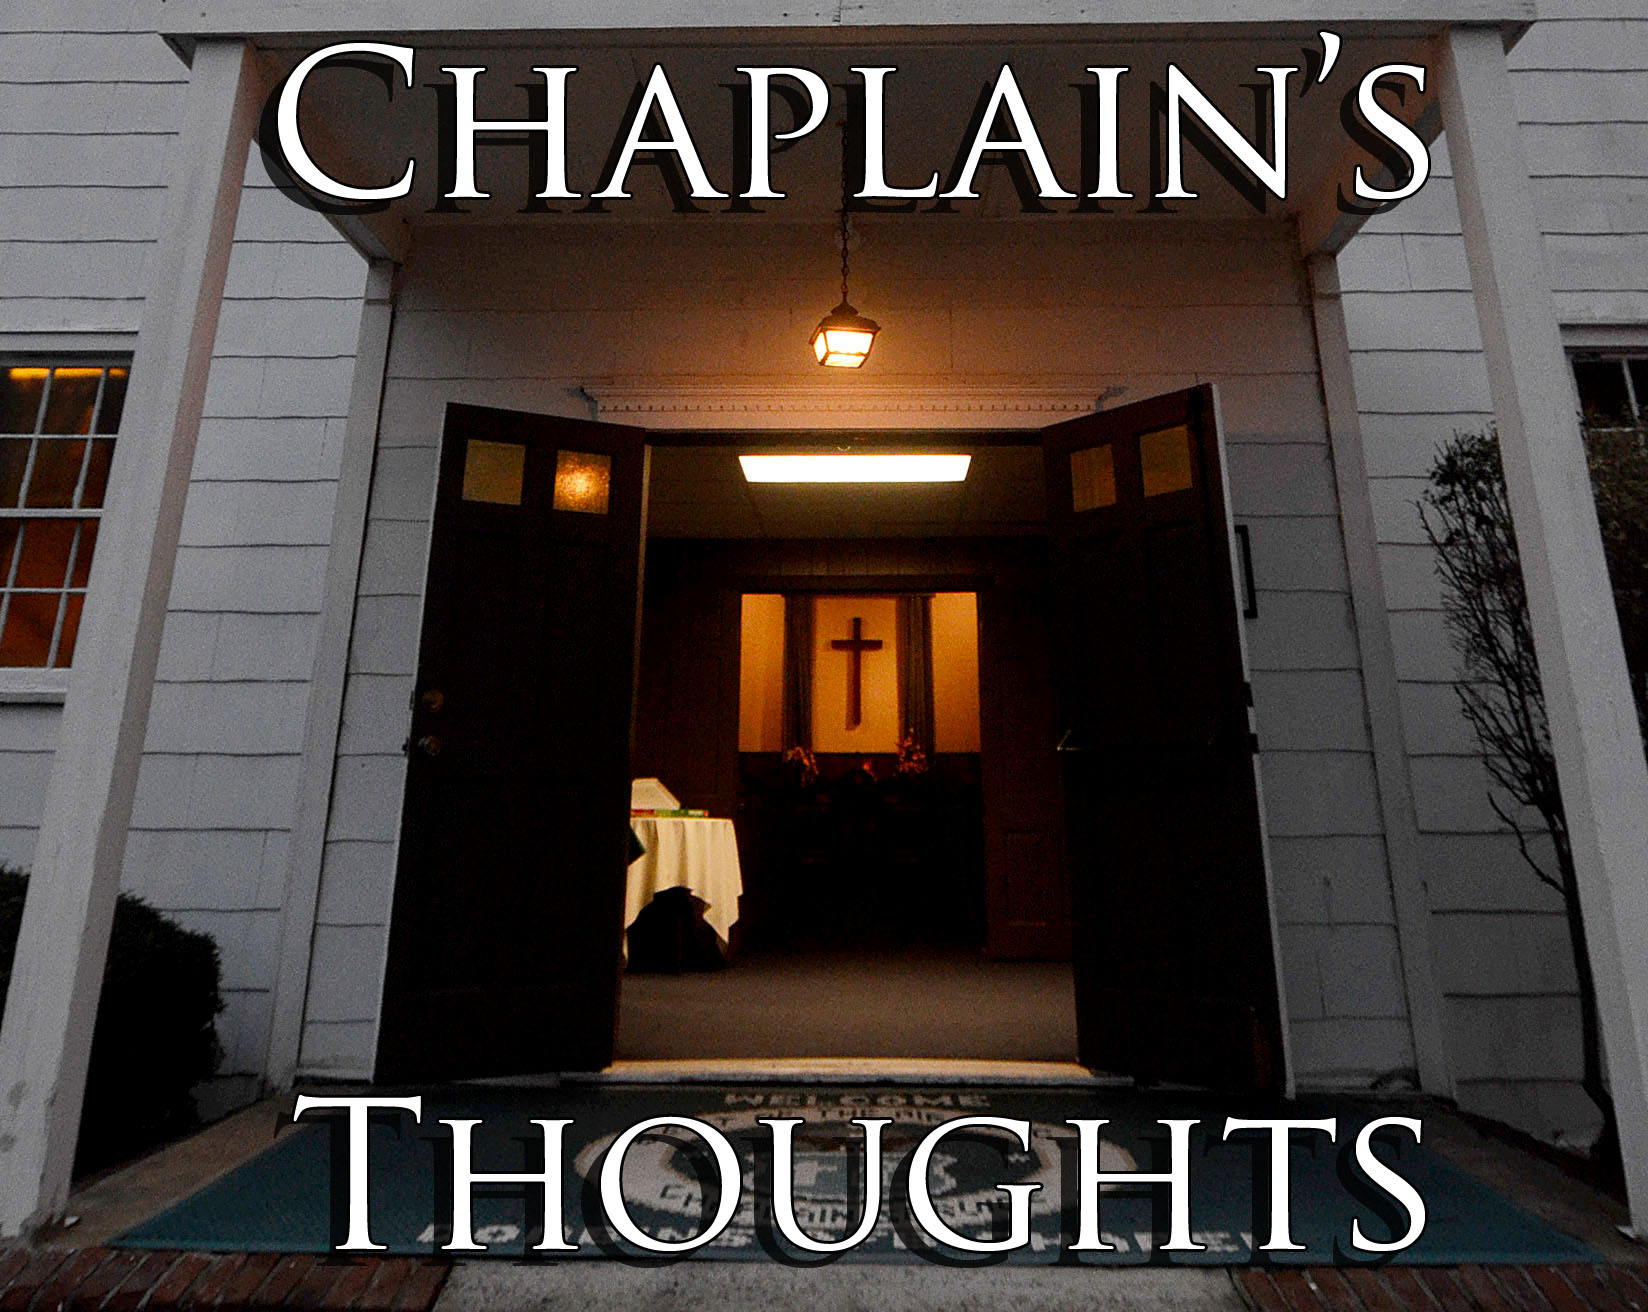 Chaplain's thoughts link